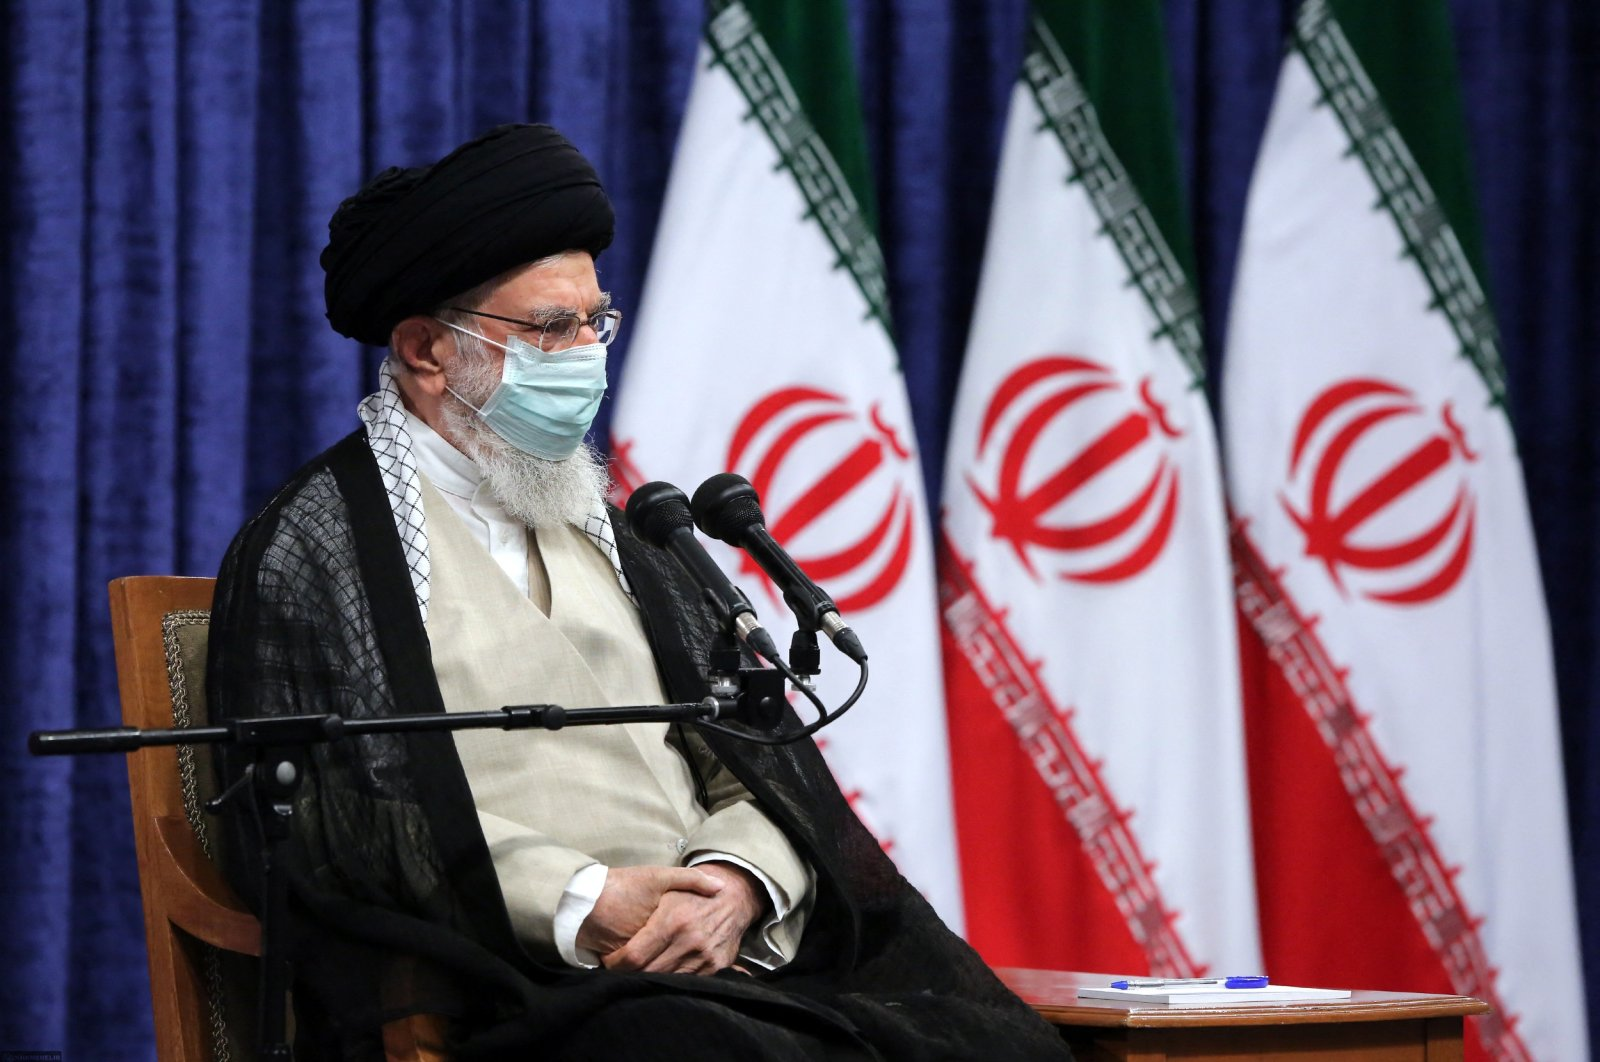 Iran's Supreme Leader Ayatollah Ali Khamenei at a meeting with the country's Olympic and Paralympic teams in Tehran, Iran, Sept. 18, 2021. (AFP Photo)